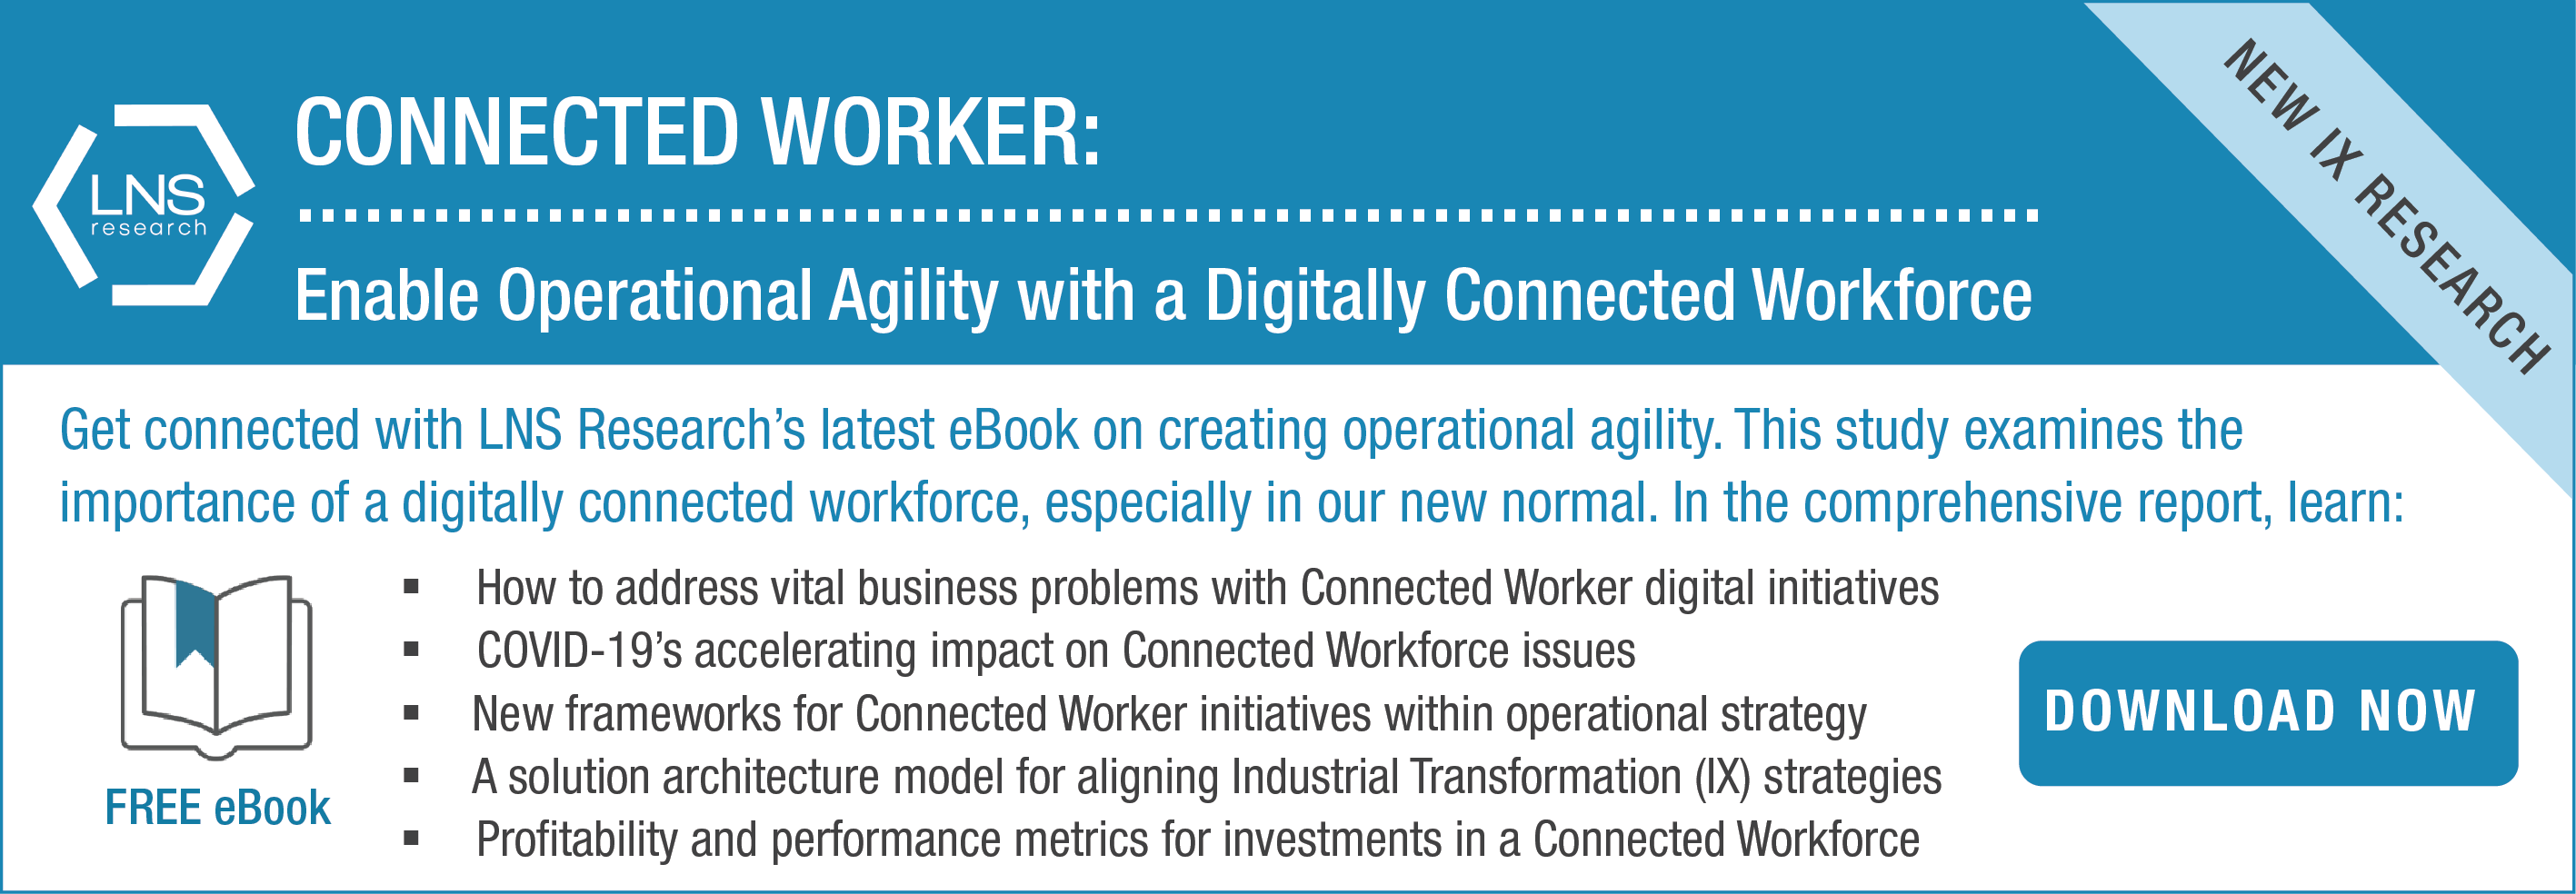 Connected Worker 2020 CTA